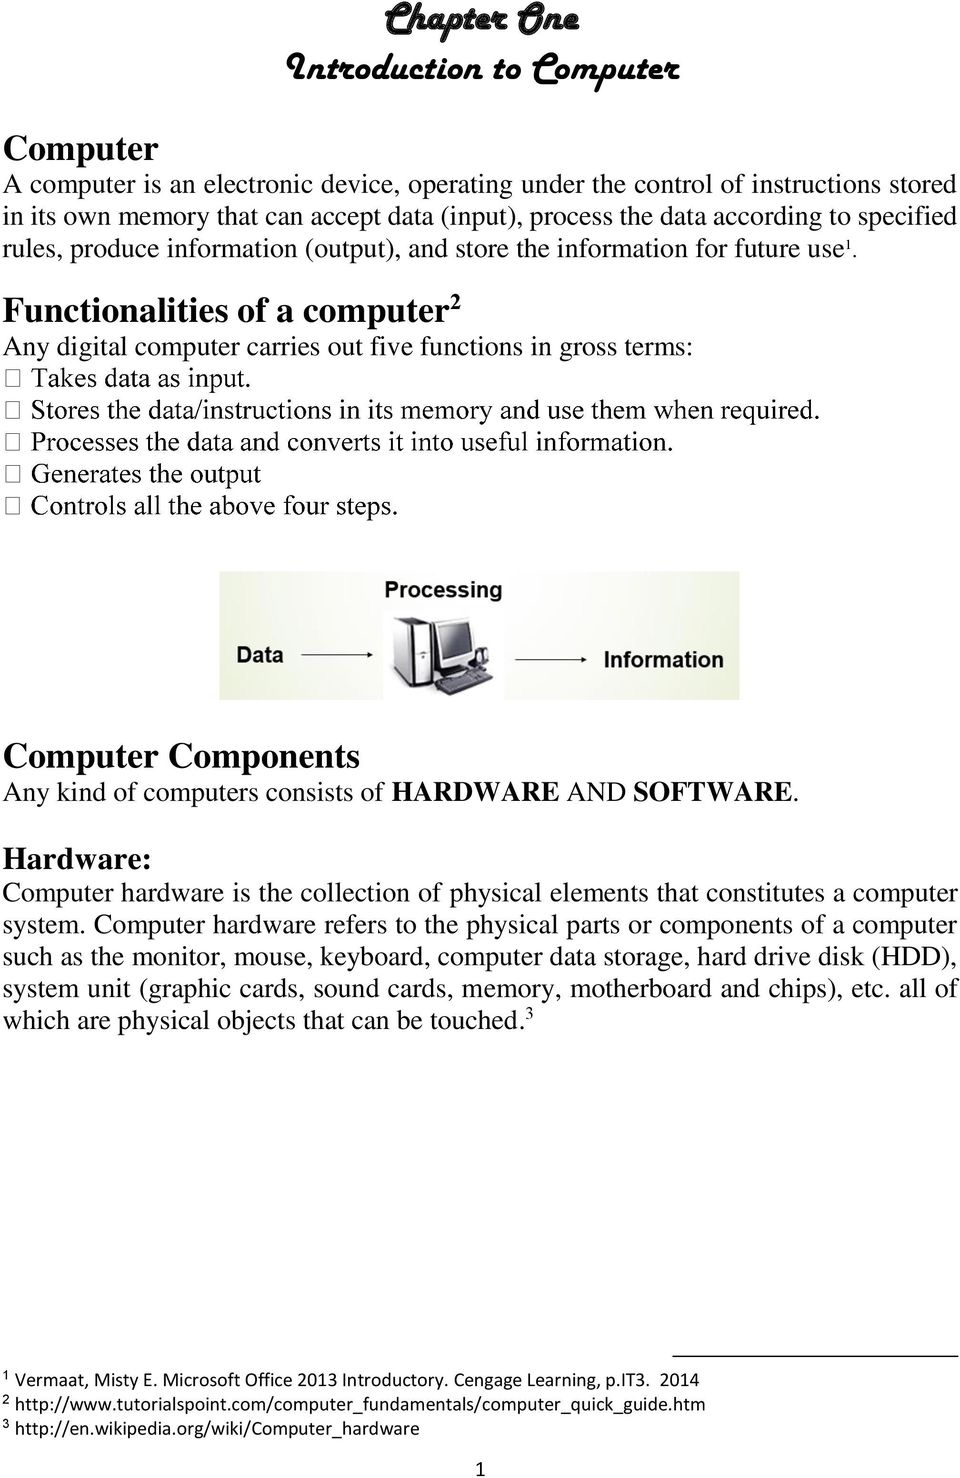 Functionalities of a computer 2 Any digital computer carries out five functions in gross terms: Computer Components Any kind of computers consists of HARDWARE AND SOFTWARE.